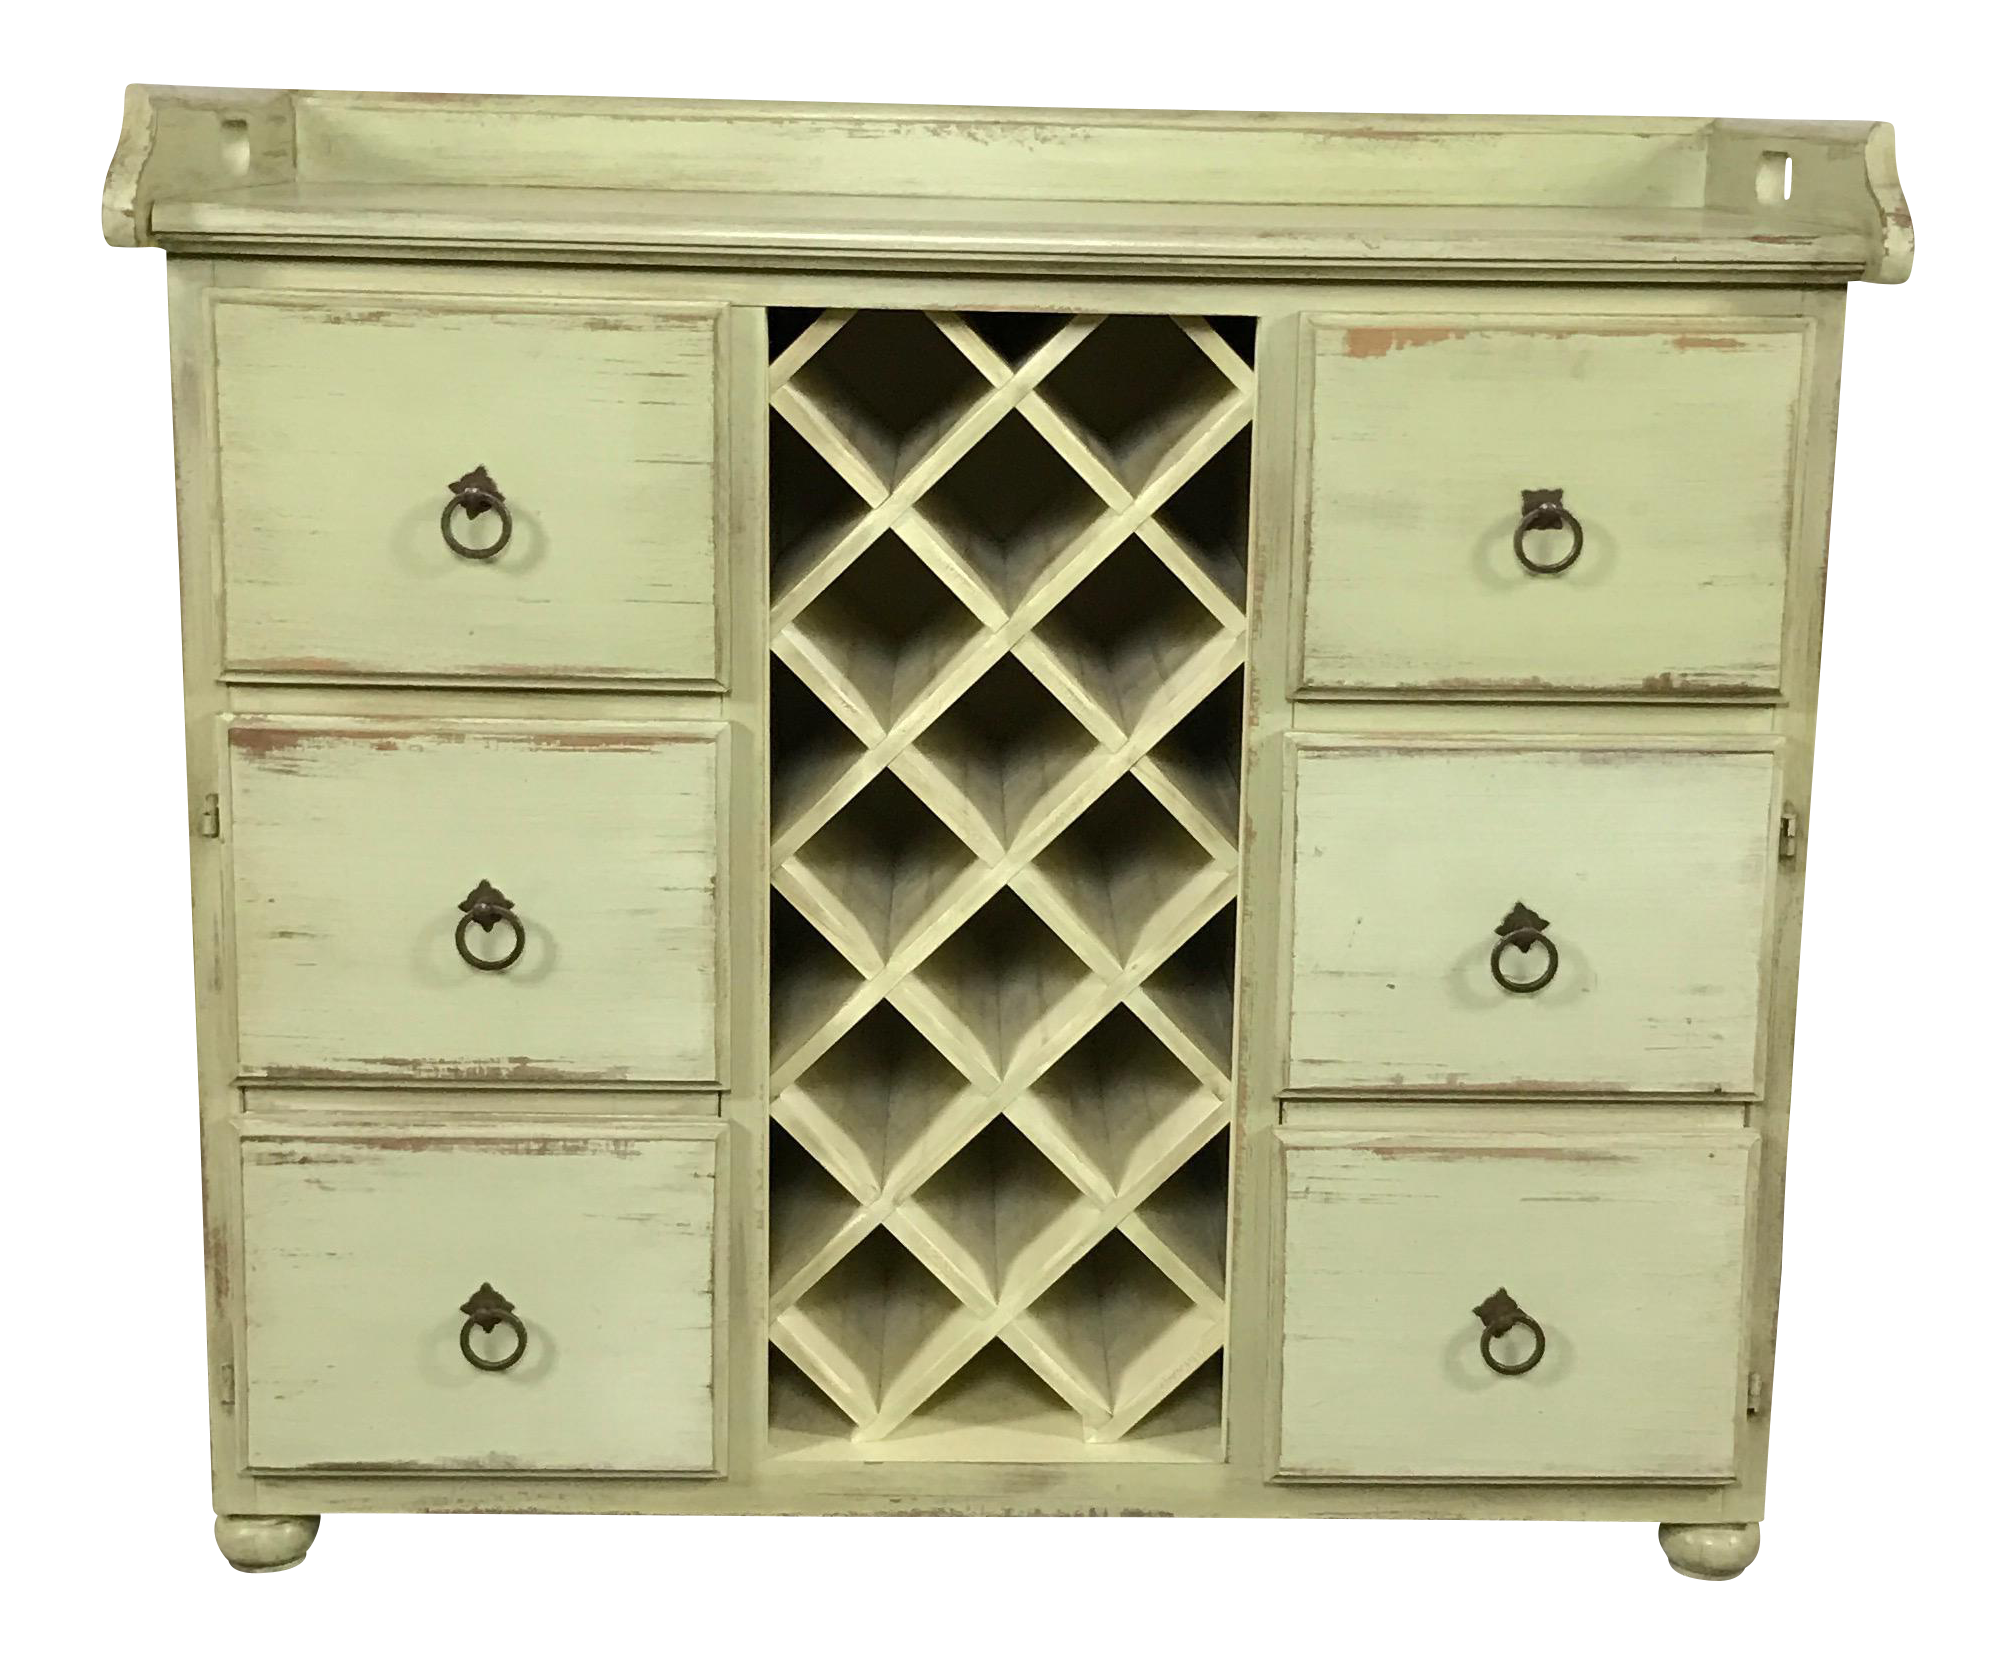 Crate barrel rustic wine rack cabinet chairish for Kitchen cabinets lowes with crate and barrel wall art sale